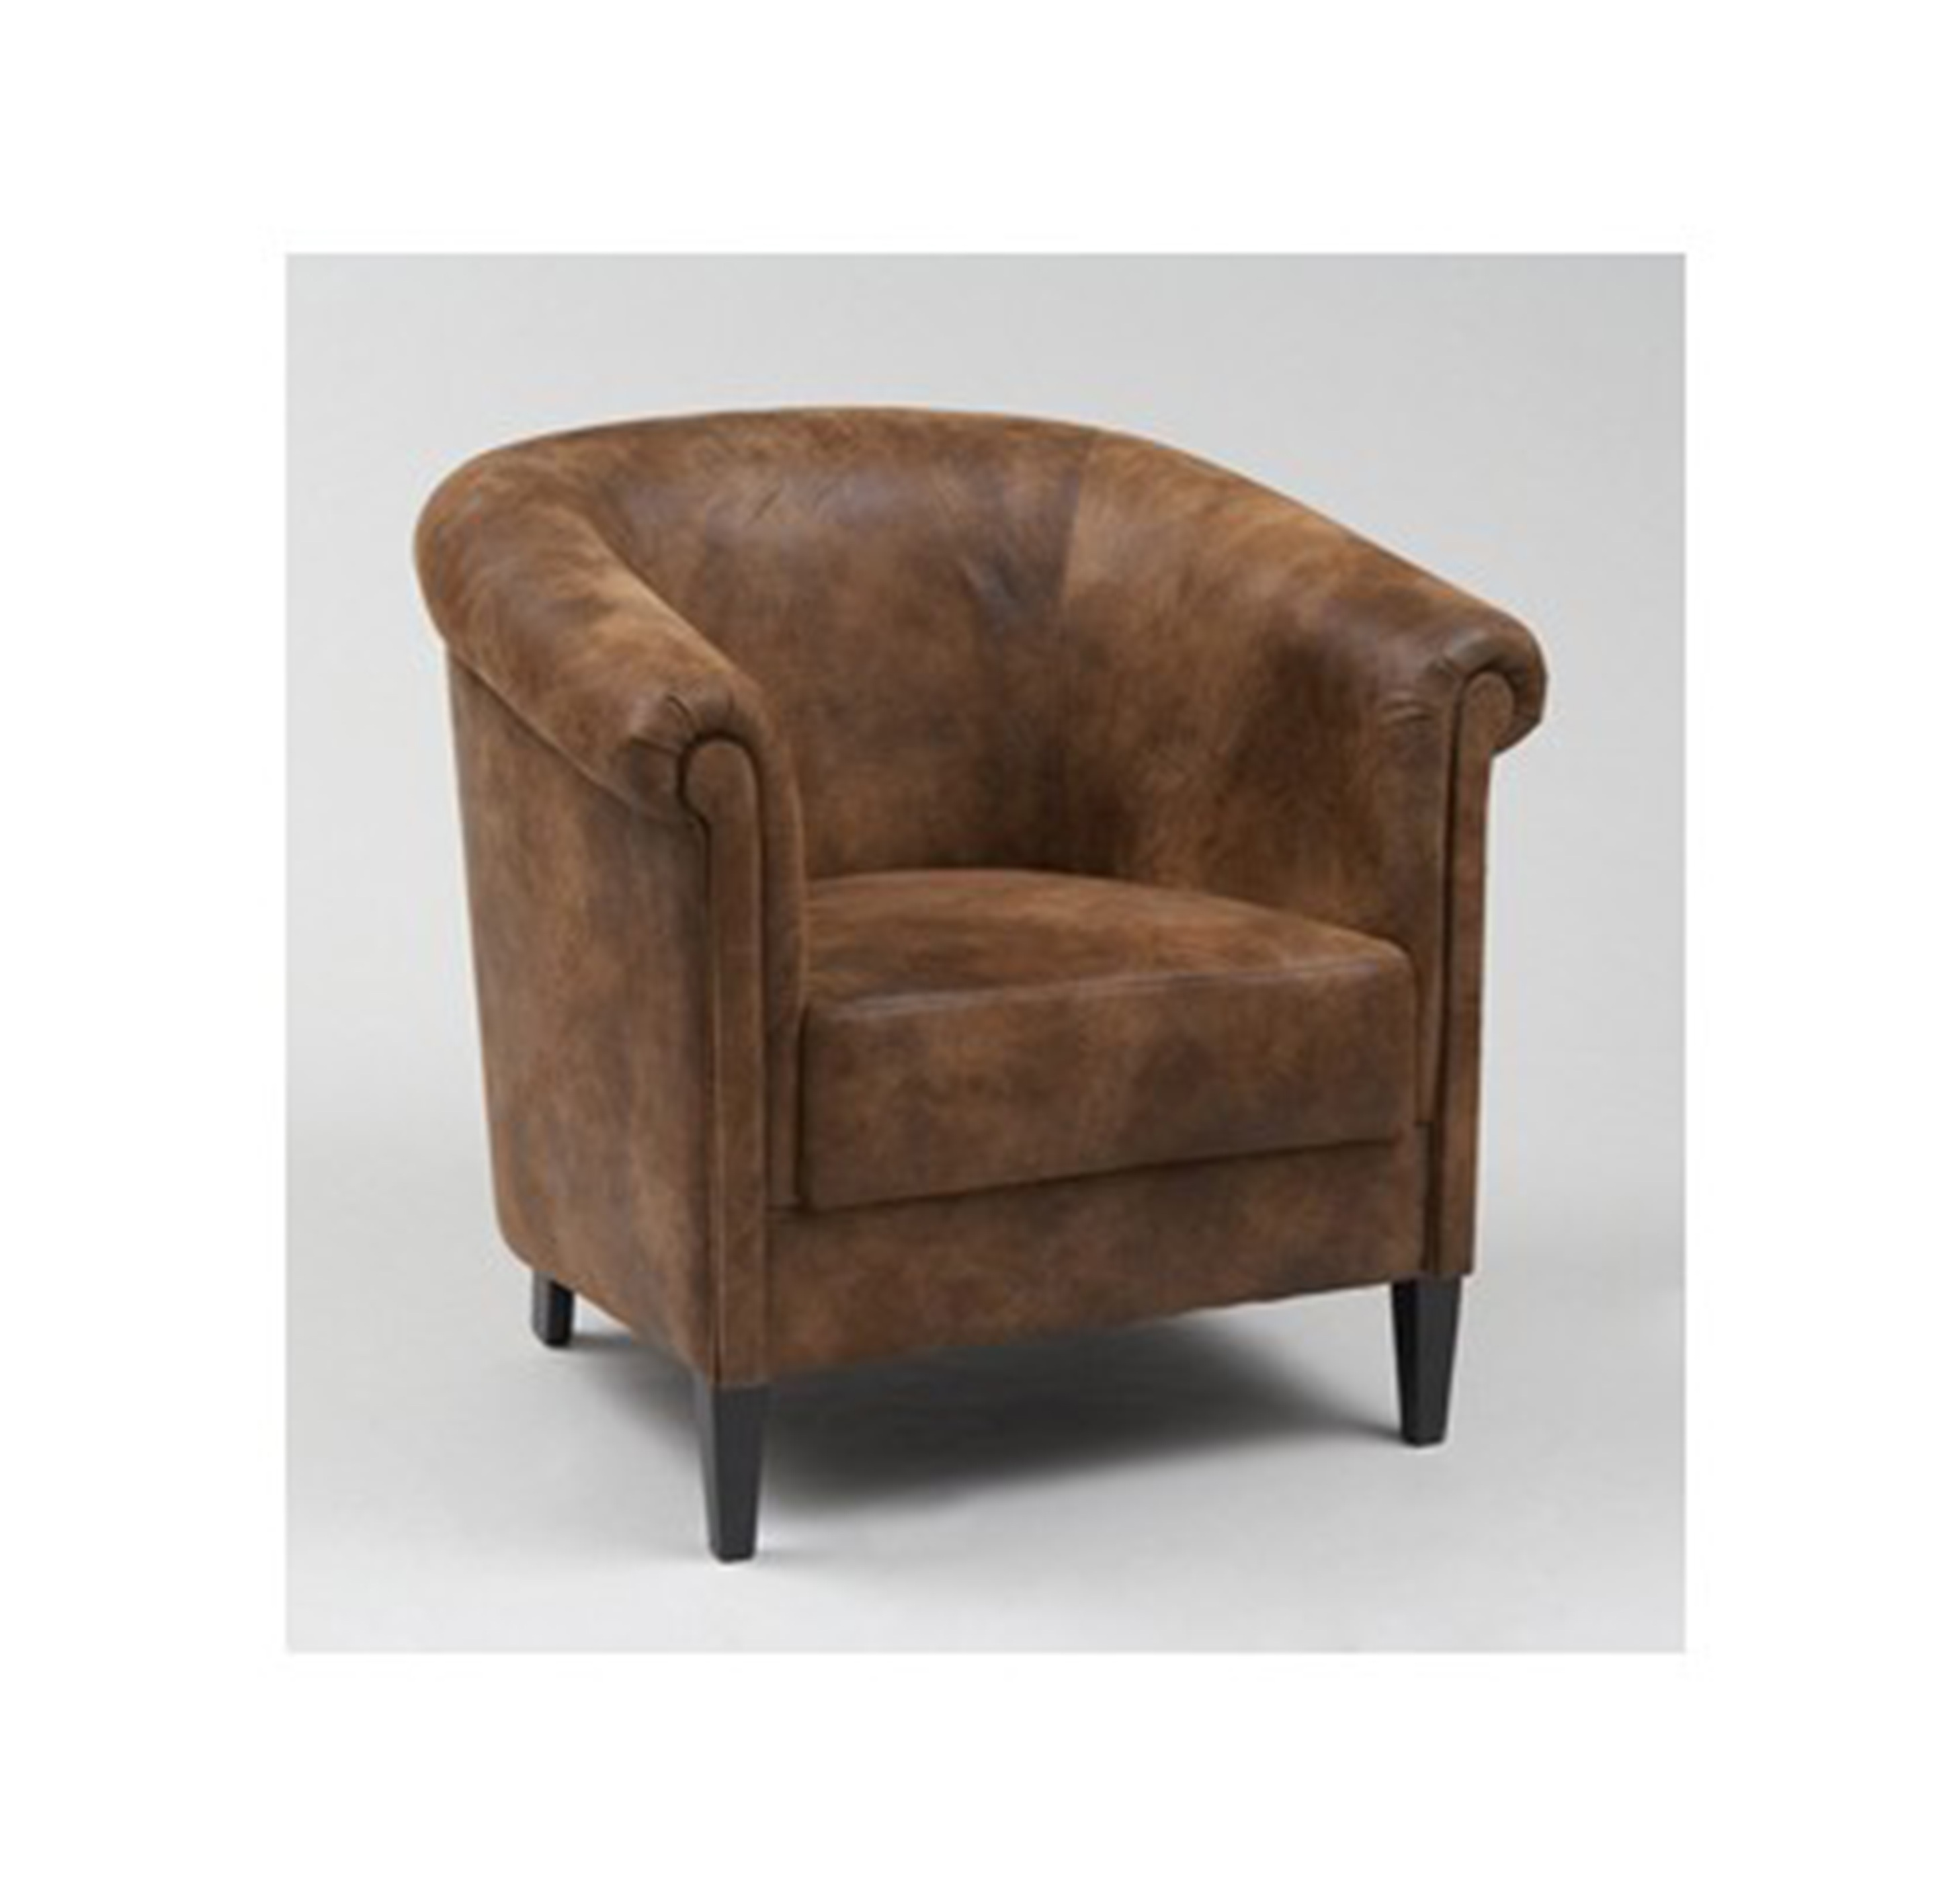 Lounge Sessel Chesterfield Chesterfield Welt Ohrensessel And Sessel Jvmoebel De